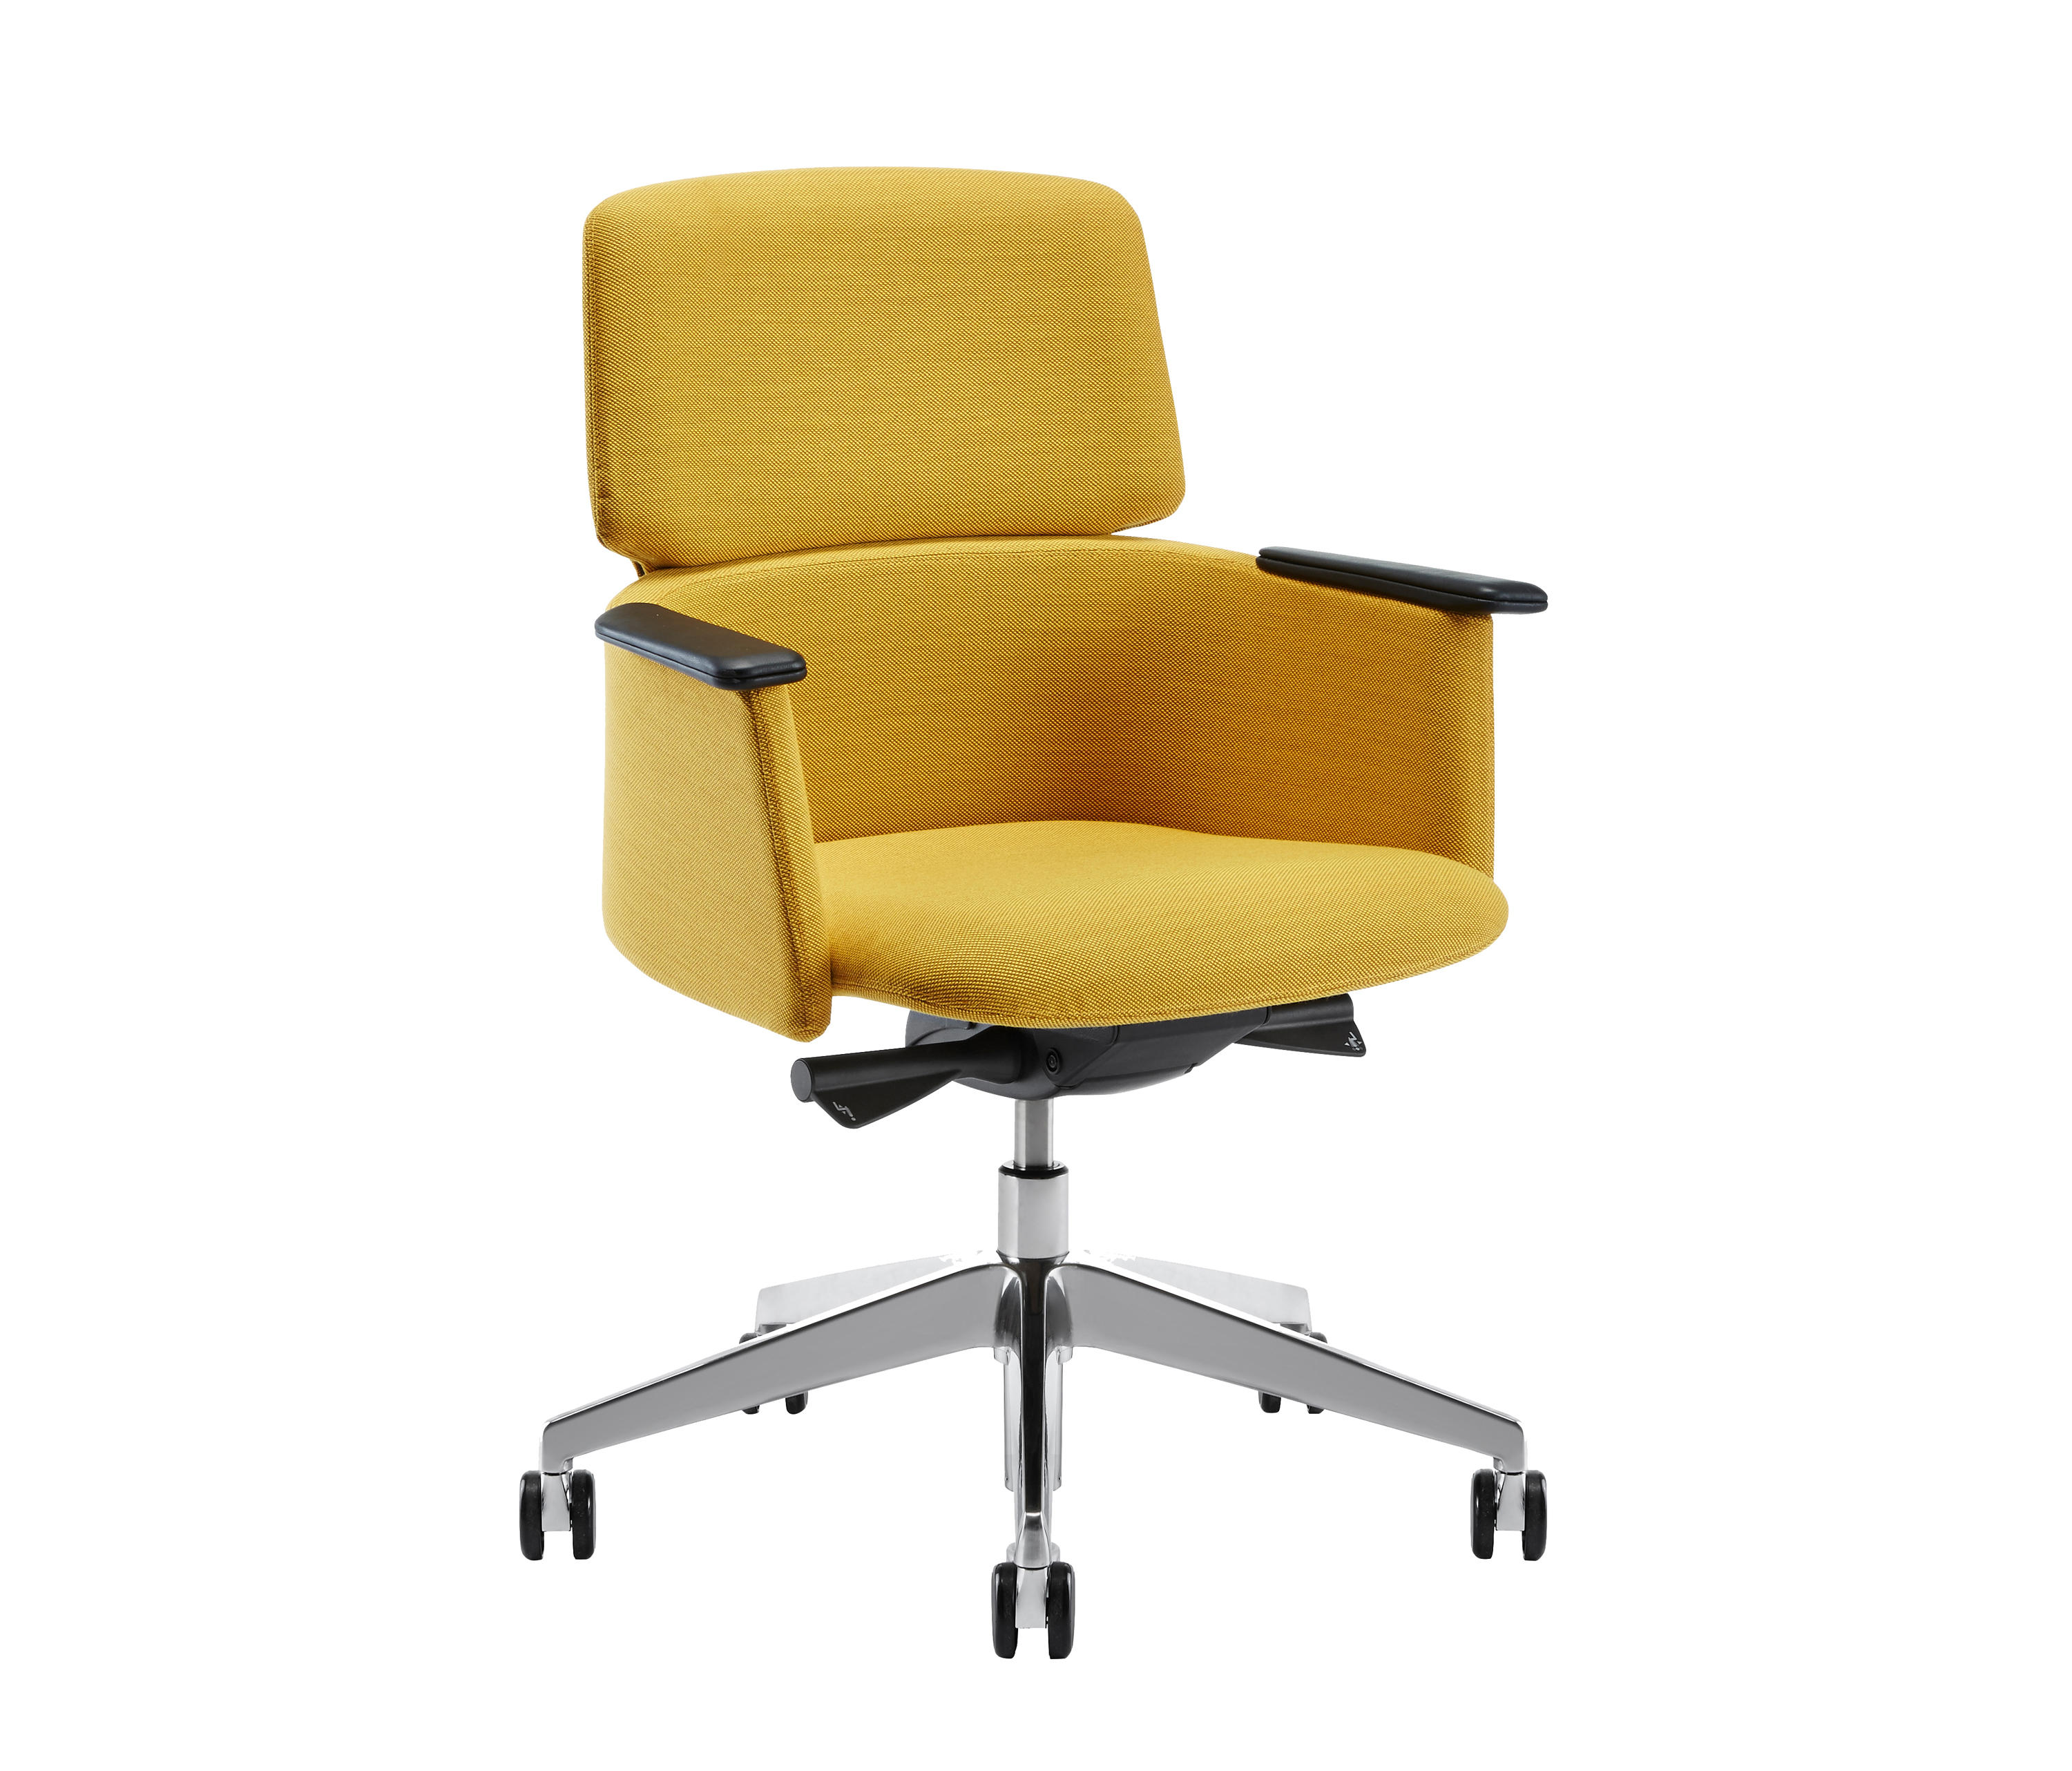 yellow office chair swivel bar tola chairs from koleksiyon furniture architonic by